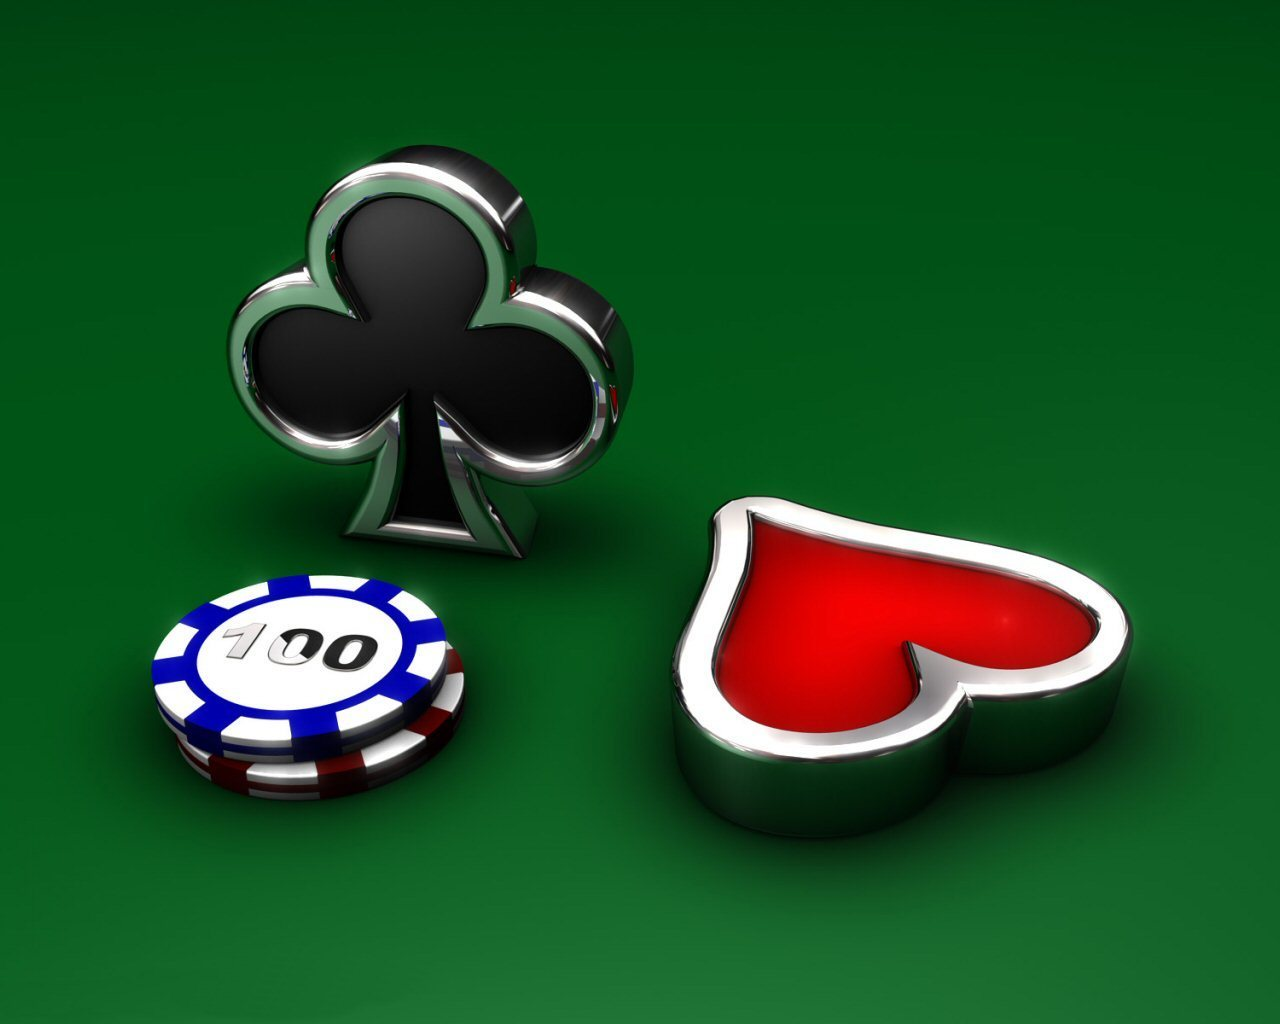 Gamble in poker definition